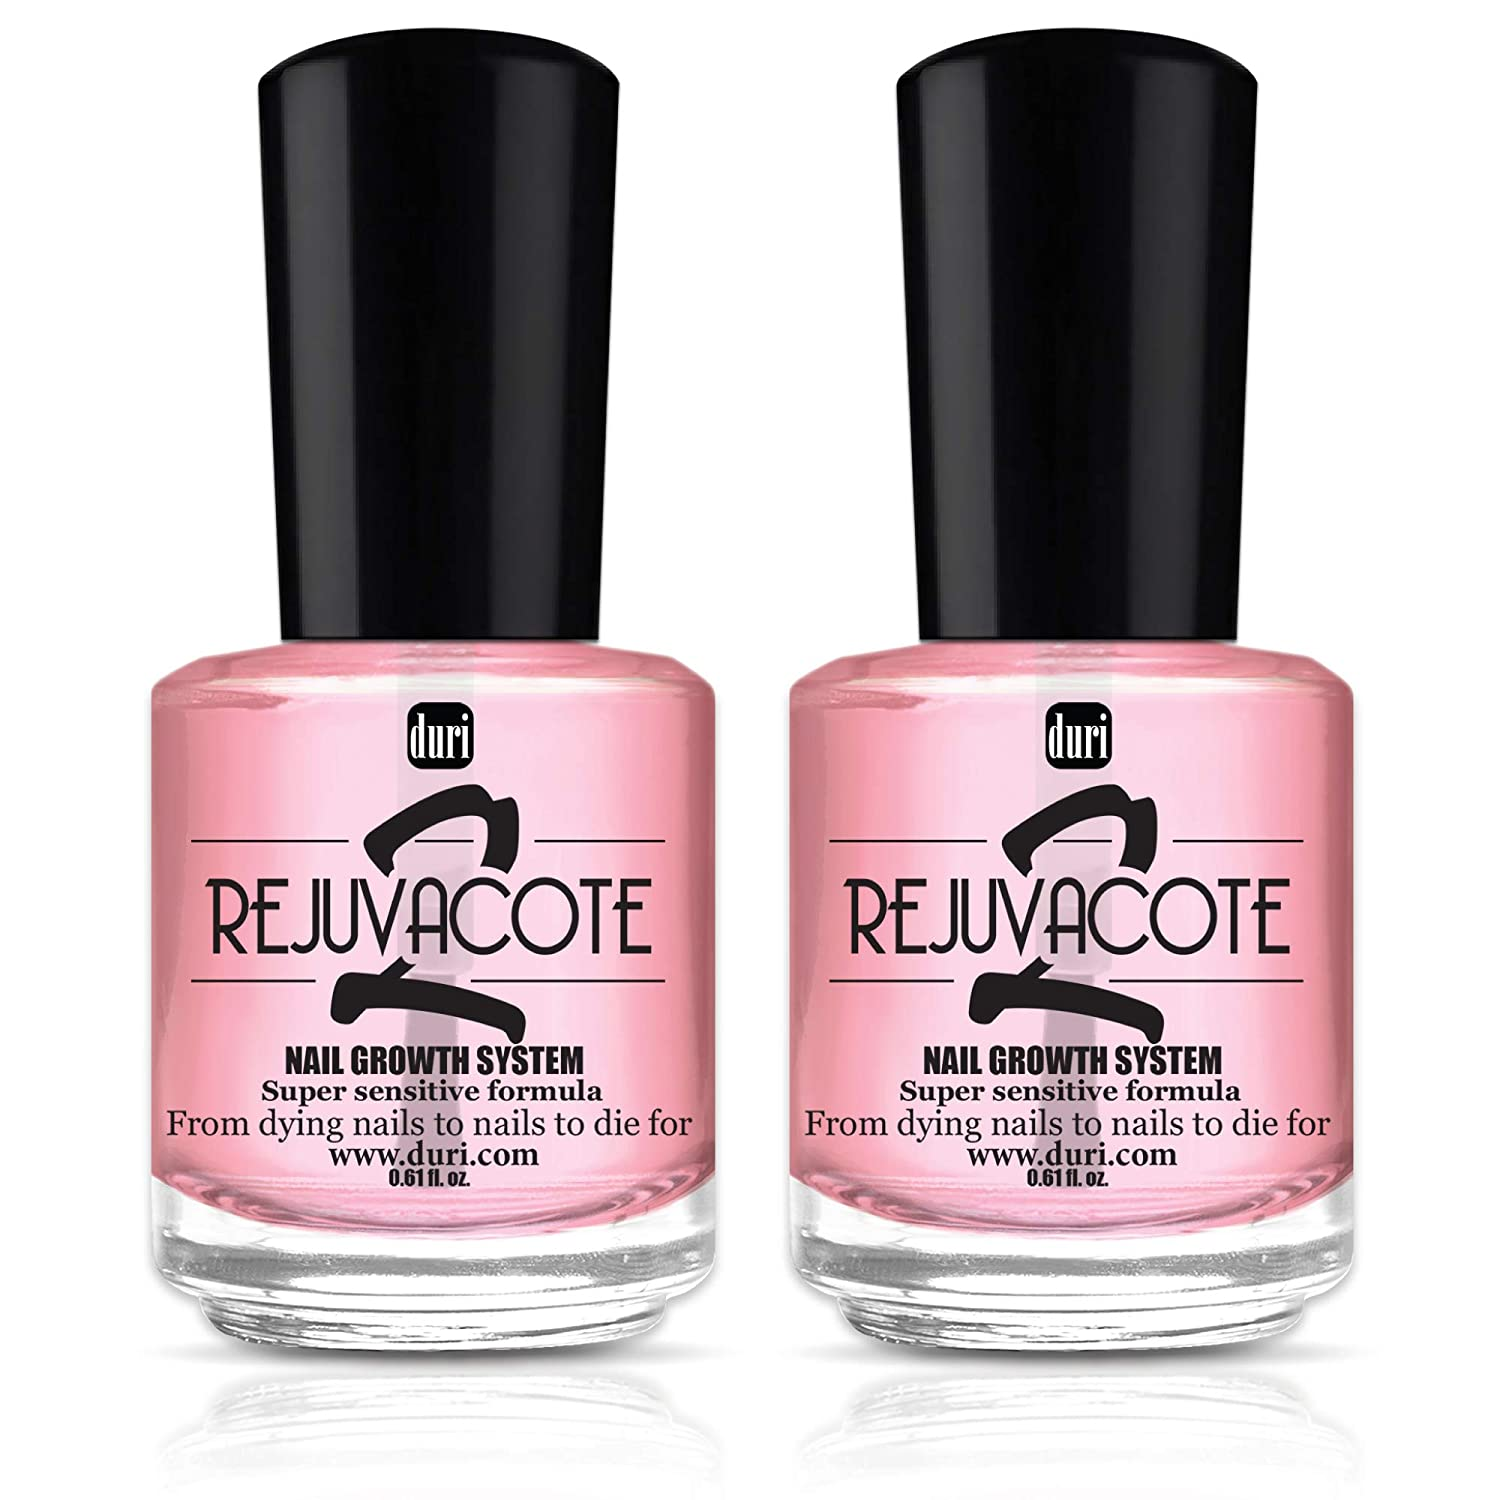 duri Rejuvacote Sales of SALE items from new works 2 Nail Growth System Base Credence - Nails and Top Coat H